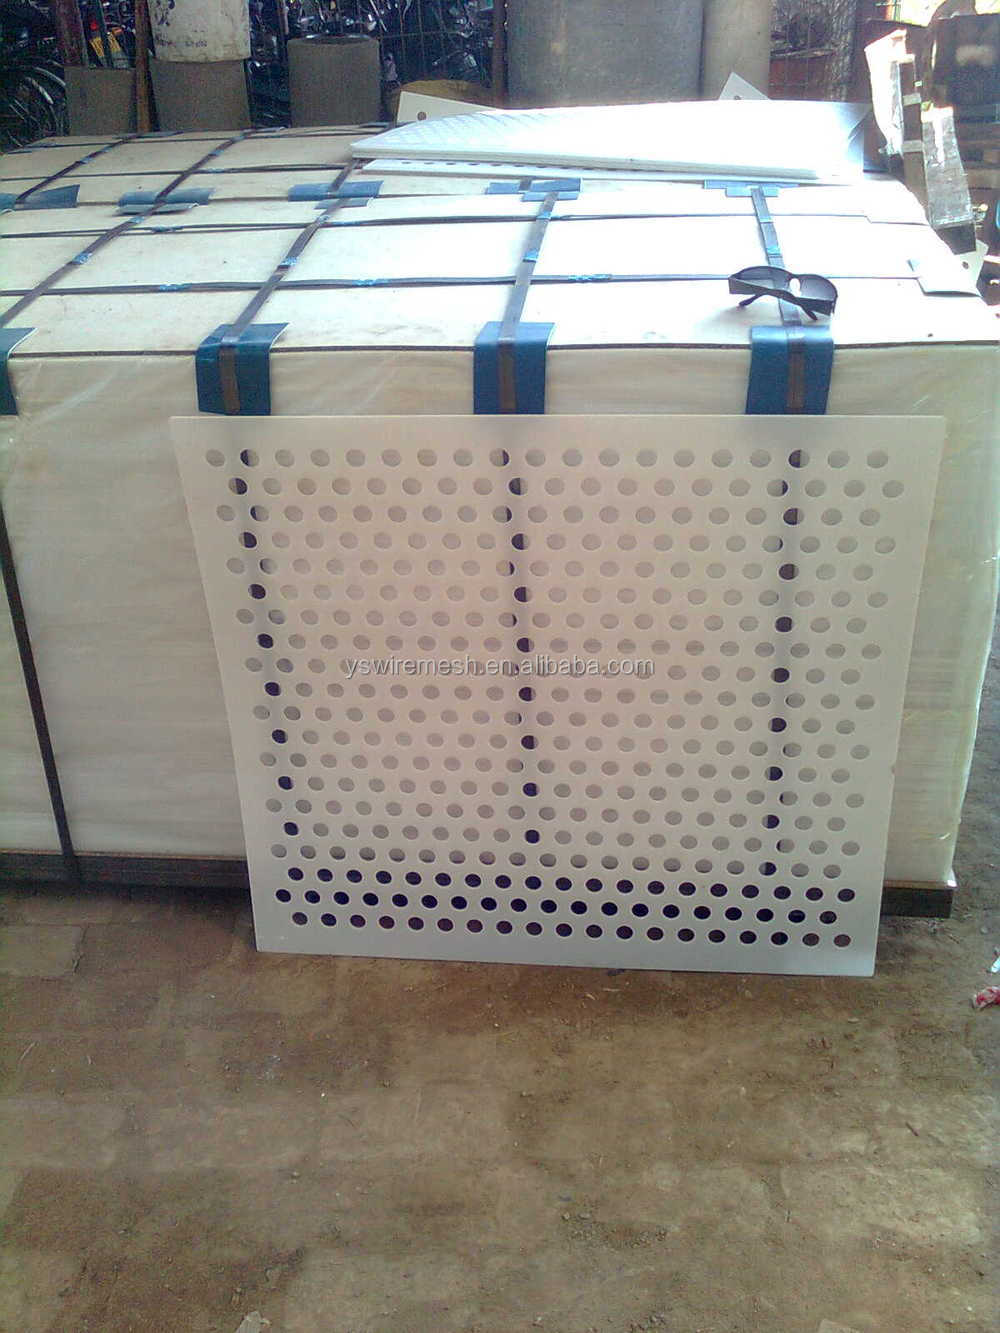 Various Design Of Perforated Wall Panelslotted Mesh Perforated Metaldecorative Perforated